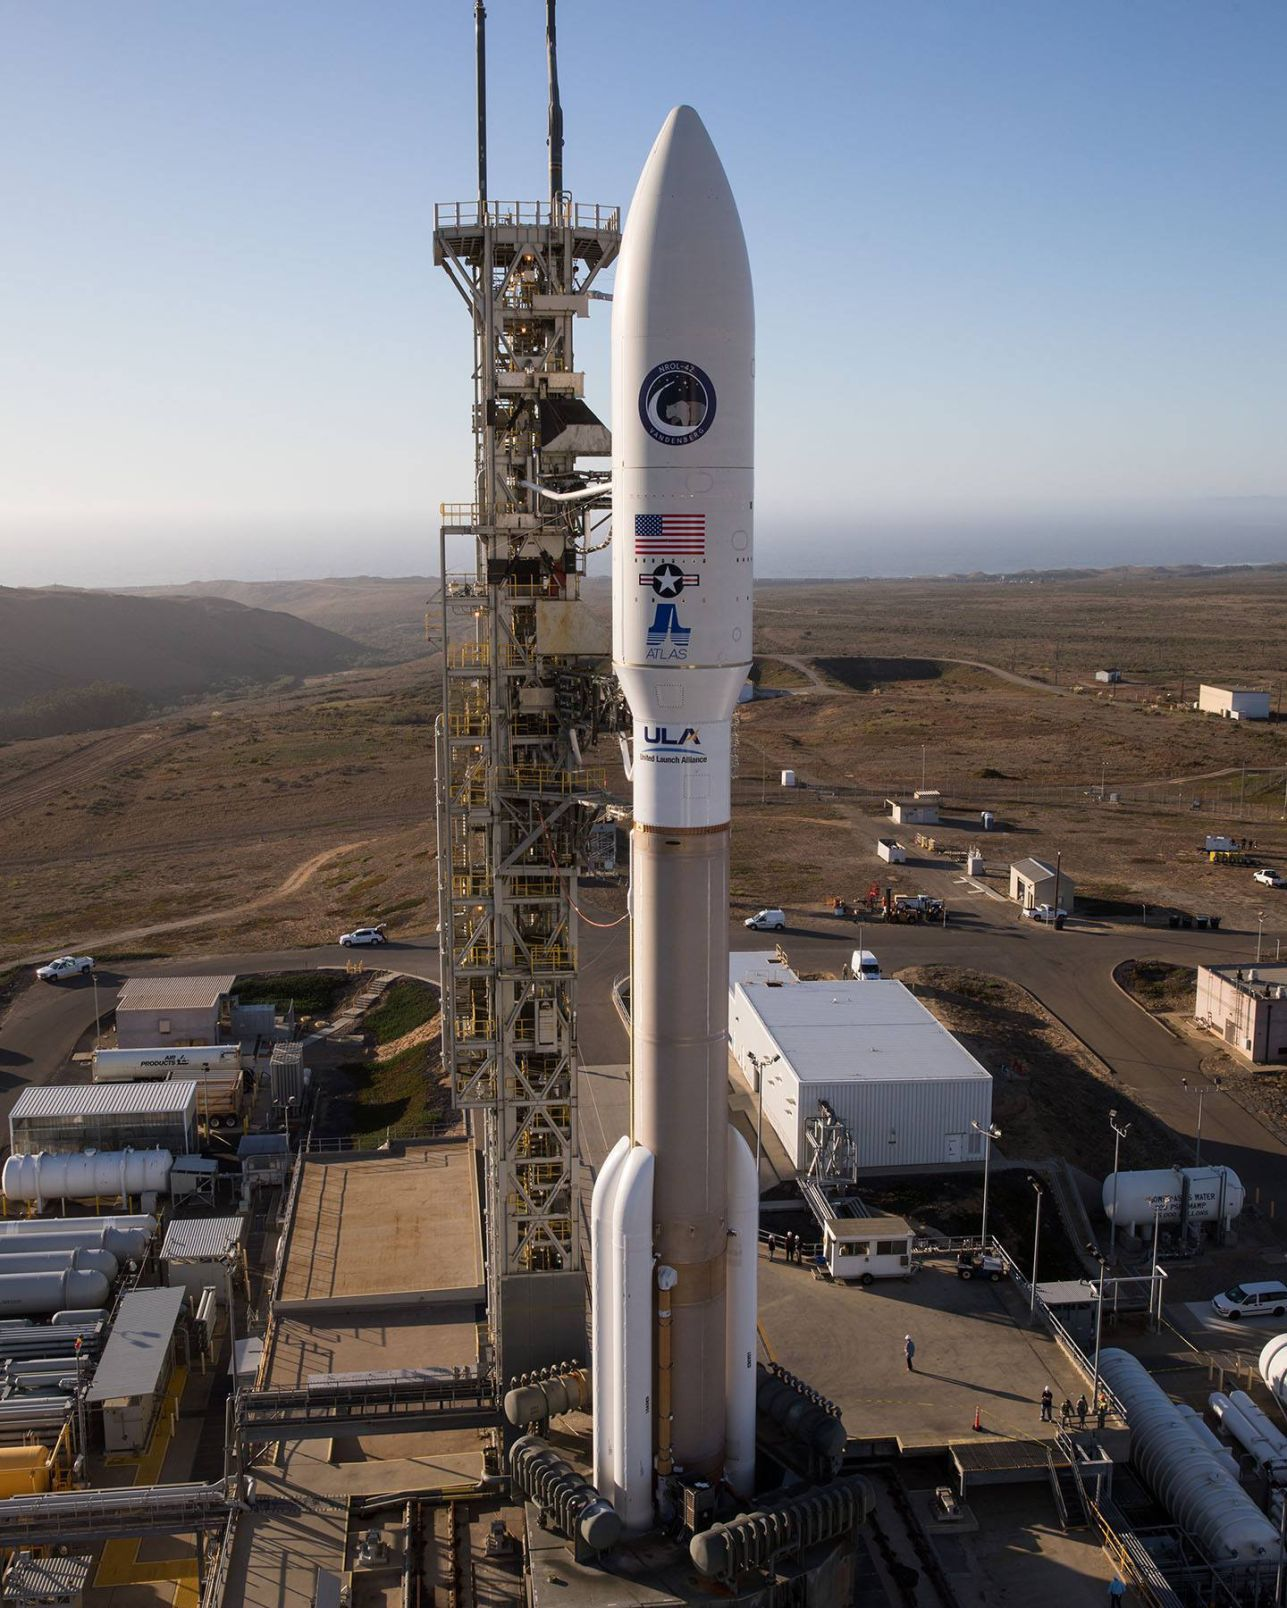 The United States launched a rocket into space with spy satellite